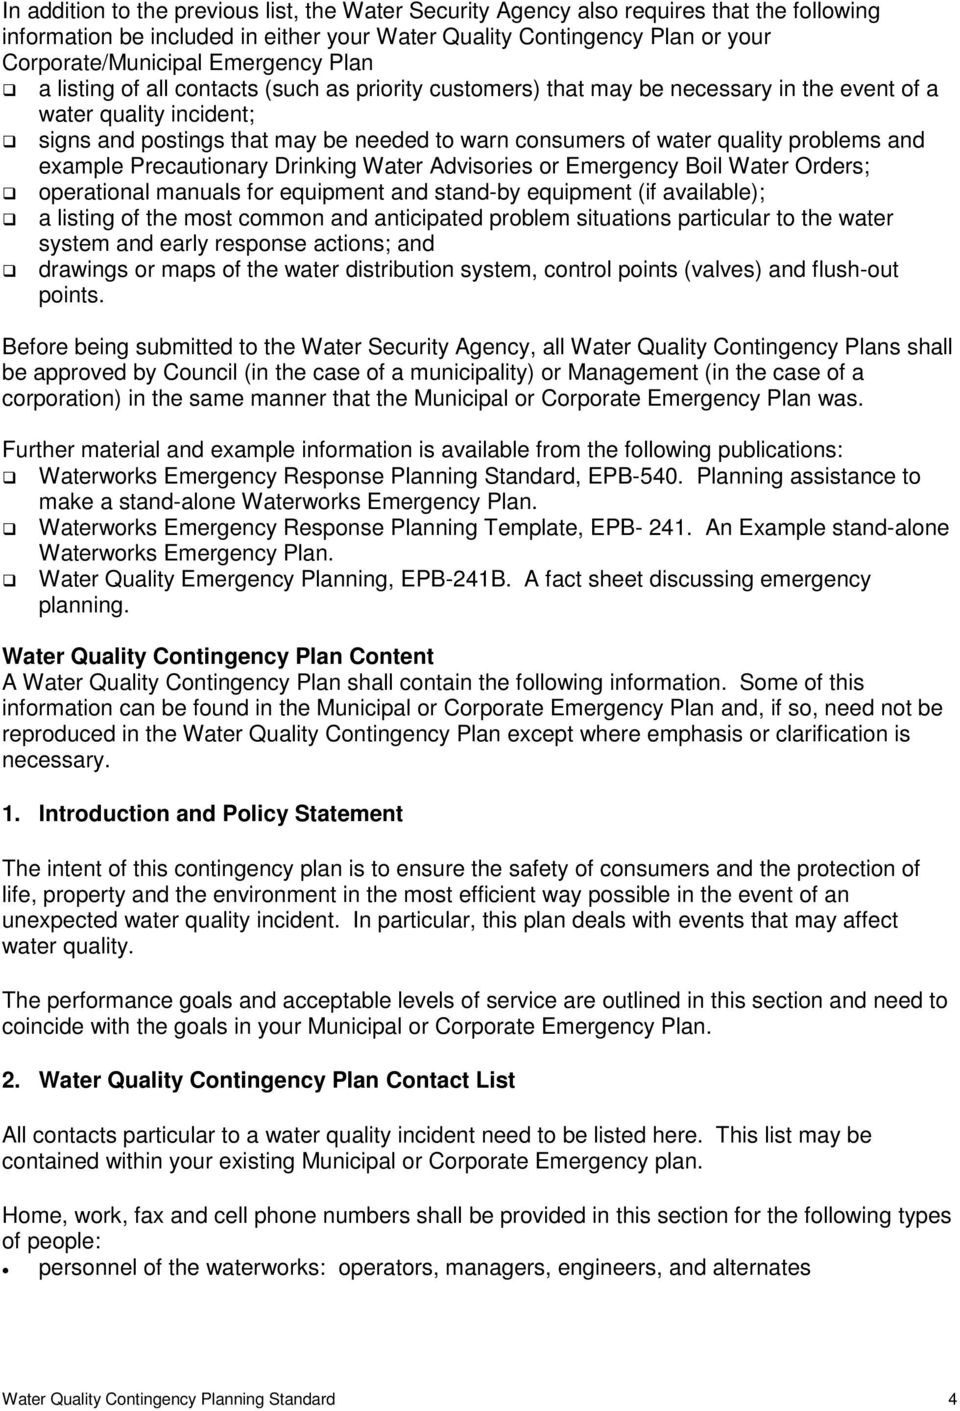 contingency planning policy statement sample